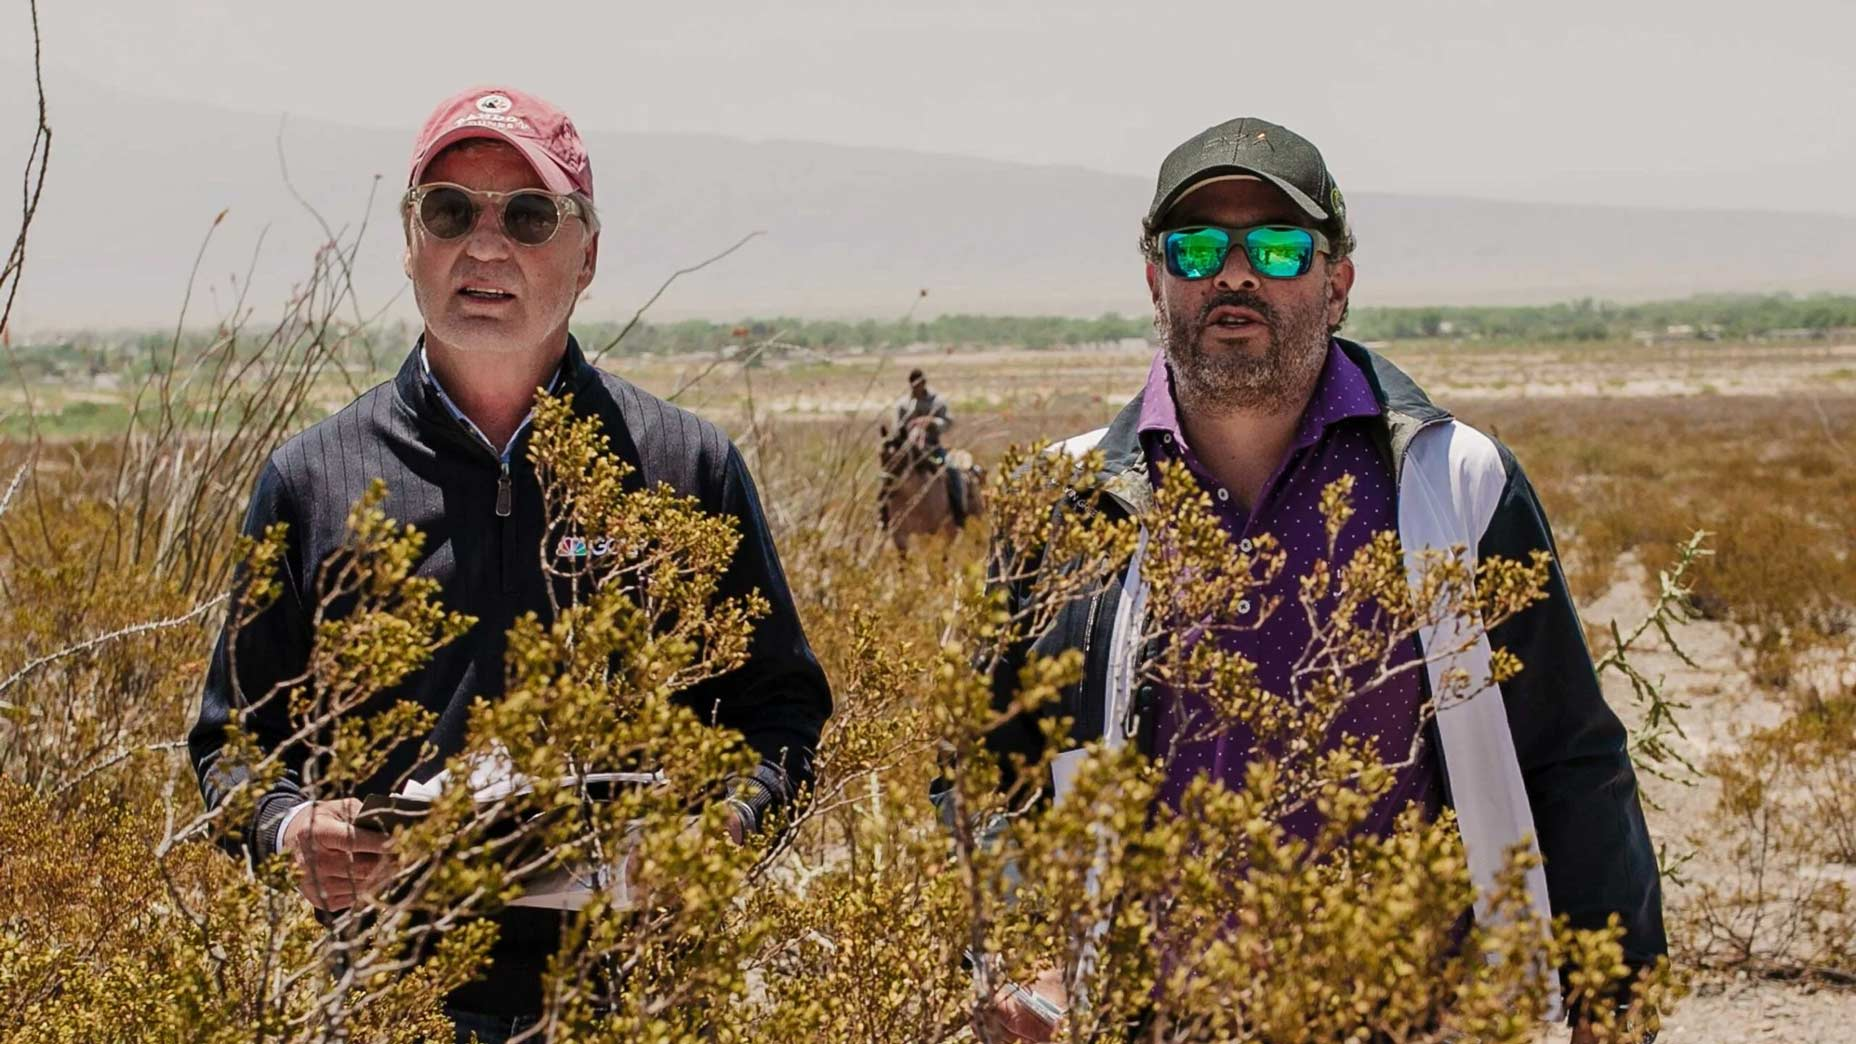 Augustin Piza and Brandel Chamblee stand in tall grass at the Butterfly Effect / Desertica project